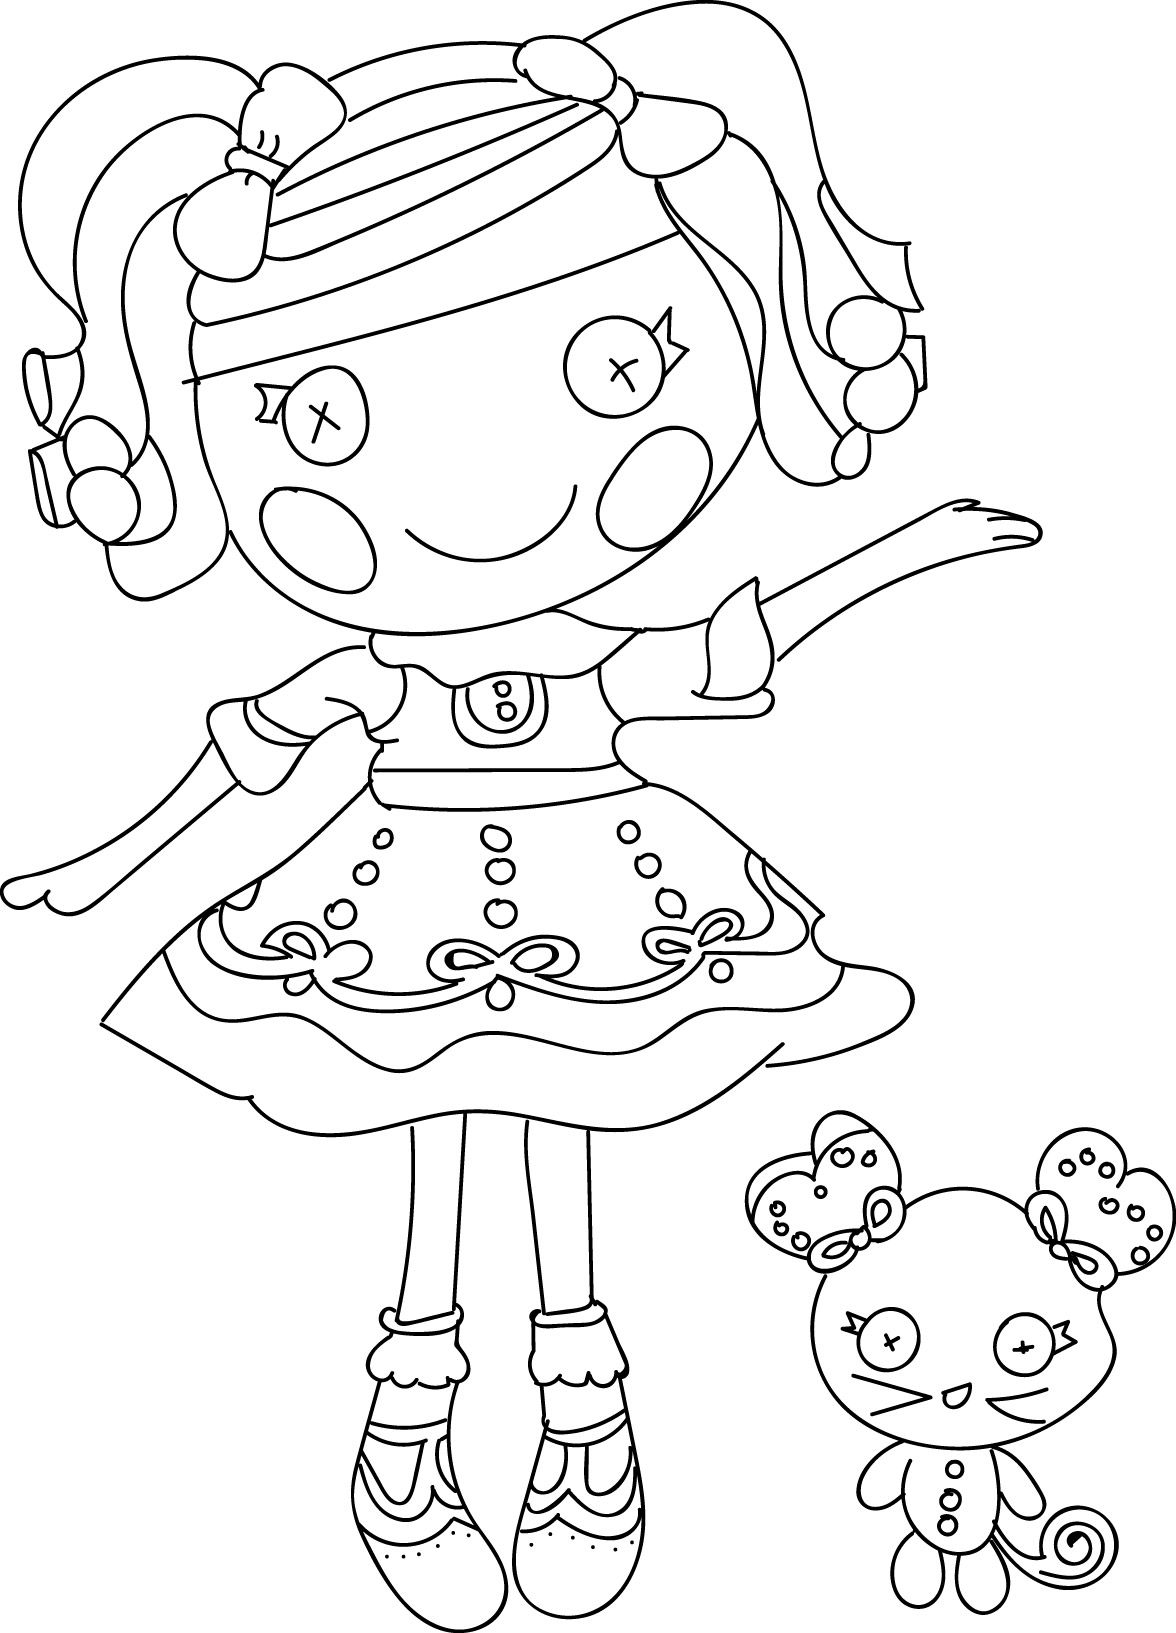 Lalaloopsy Cartoon Coloring Pages | Cartoon coloring pages ...